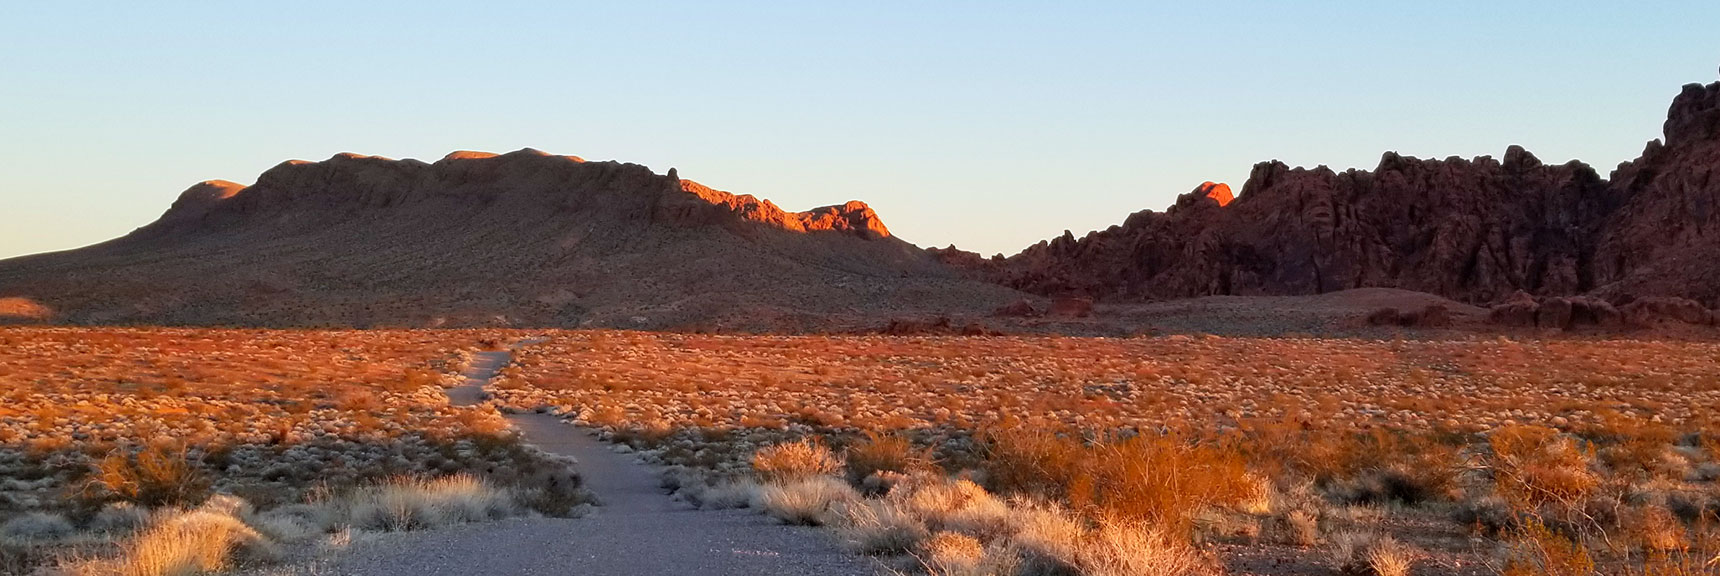 End of the Graded Road for Prospect Trail in Valley of Fire State Park, Nevada